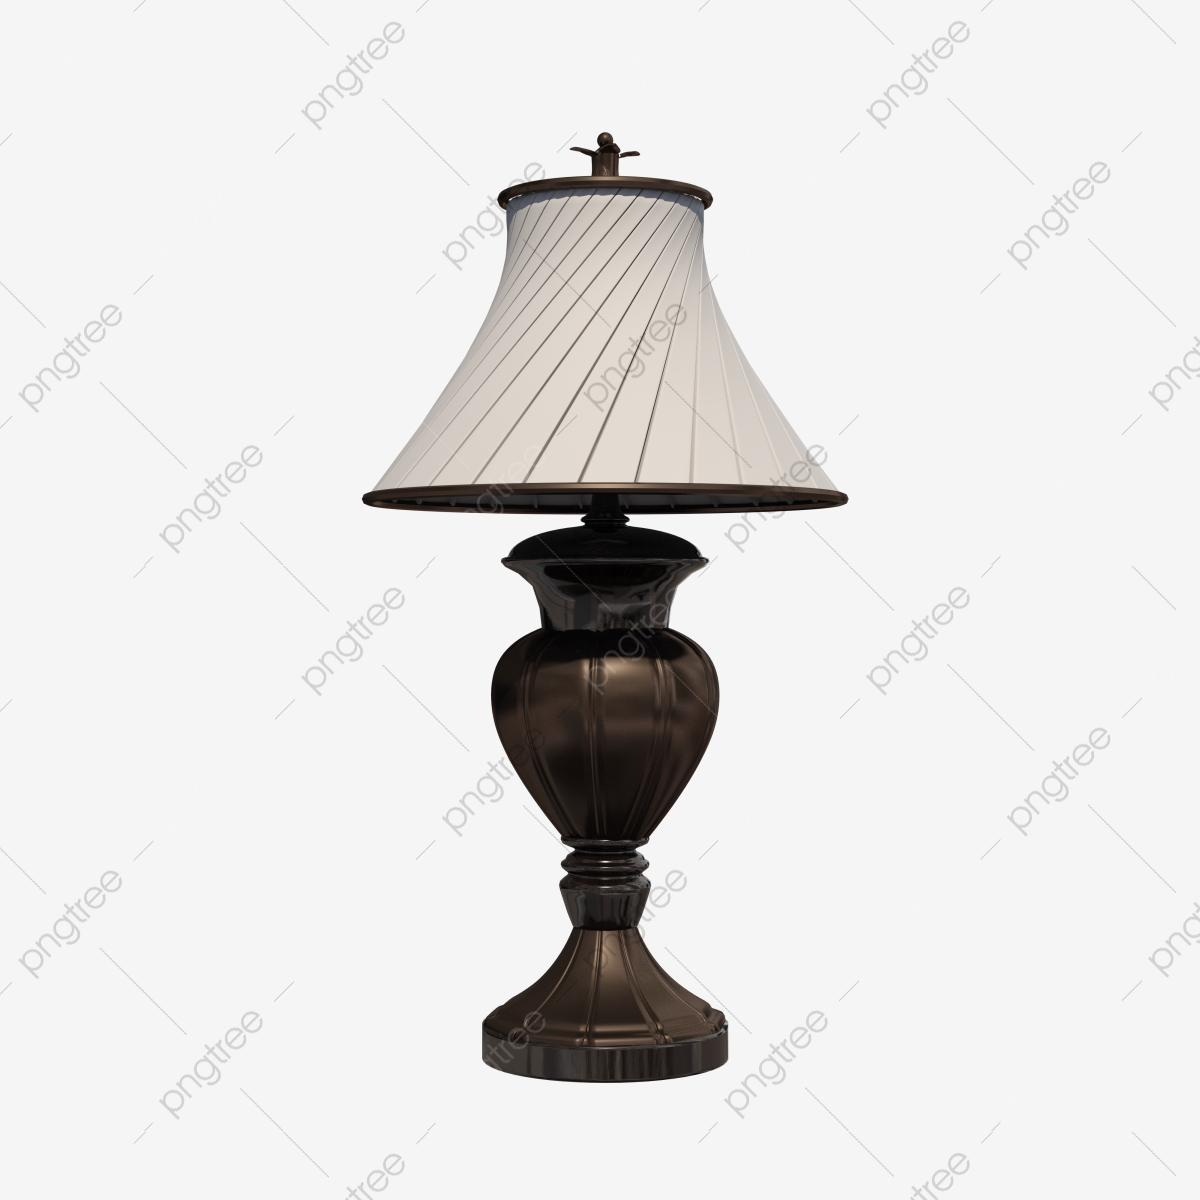 Bronze Fashion Bedside Lamp Bronze Fashion Bedside Lamps Bedside Lamps Png Transparent Clipart Image And Psd File For Free Download